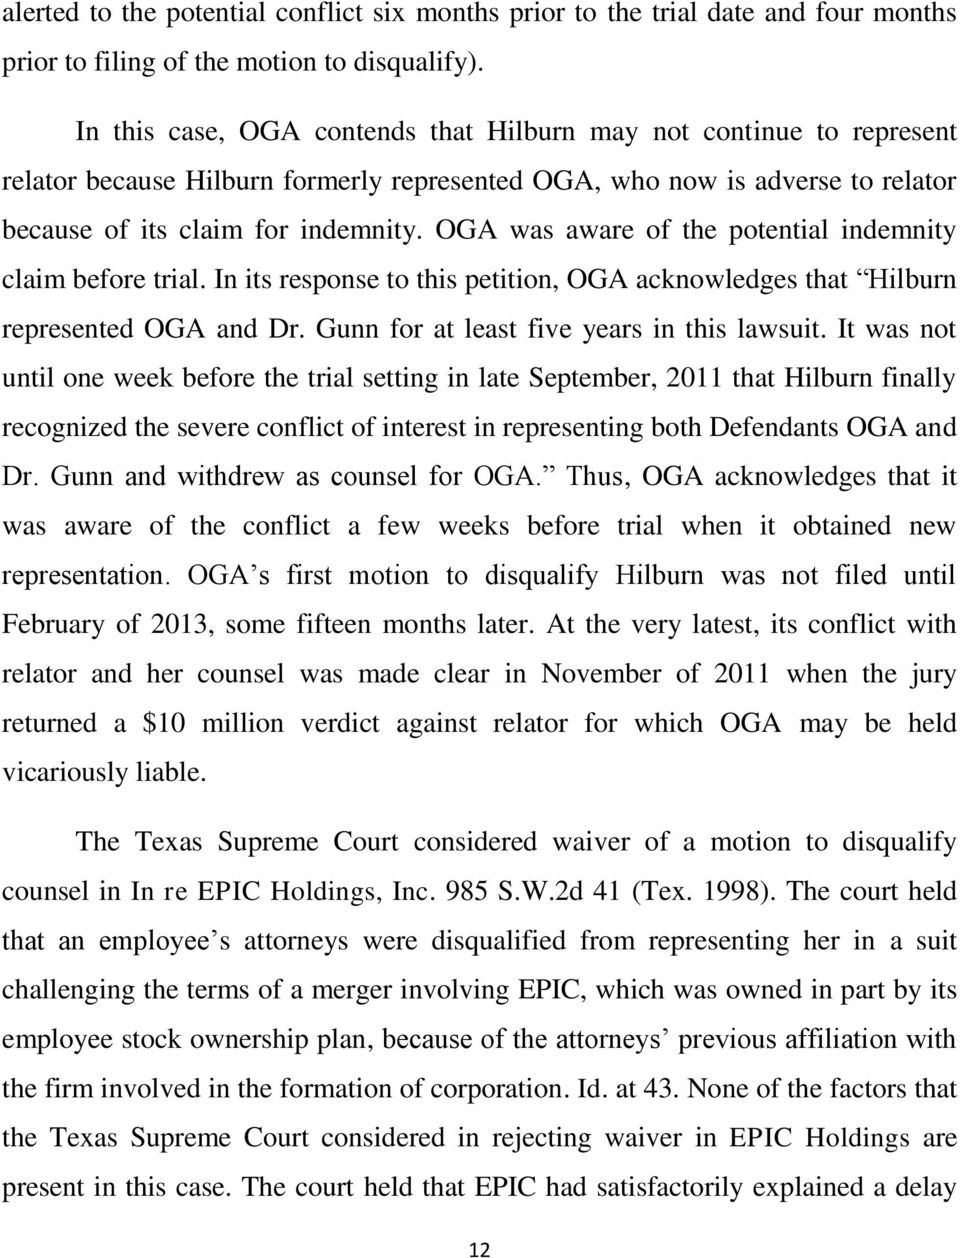 OGA was aware of the potential indemnity claim before trial. In its response to this petition, OGA acknowledges that Hilburn represented OGA and Dr. Gunn for at least five years in this lawsuit.